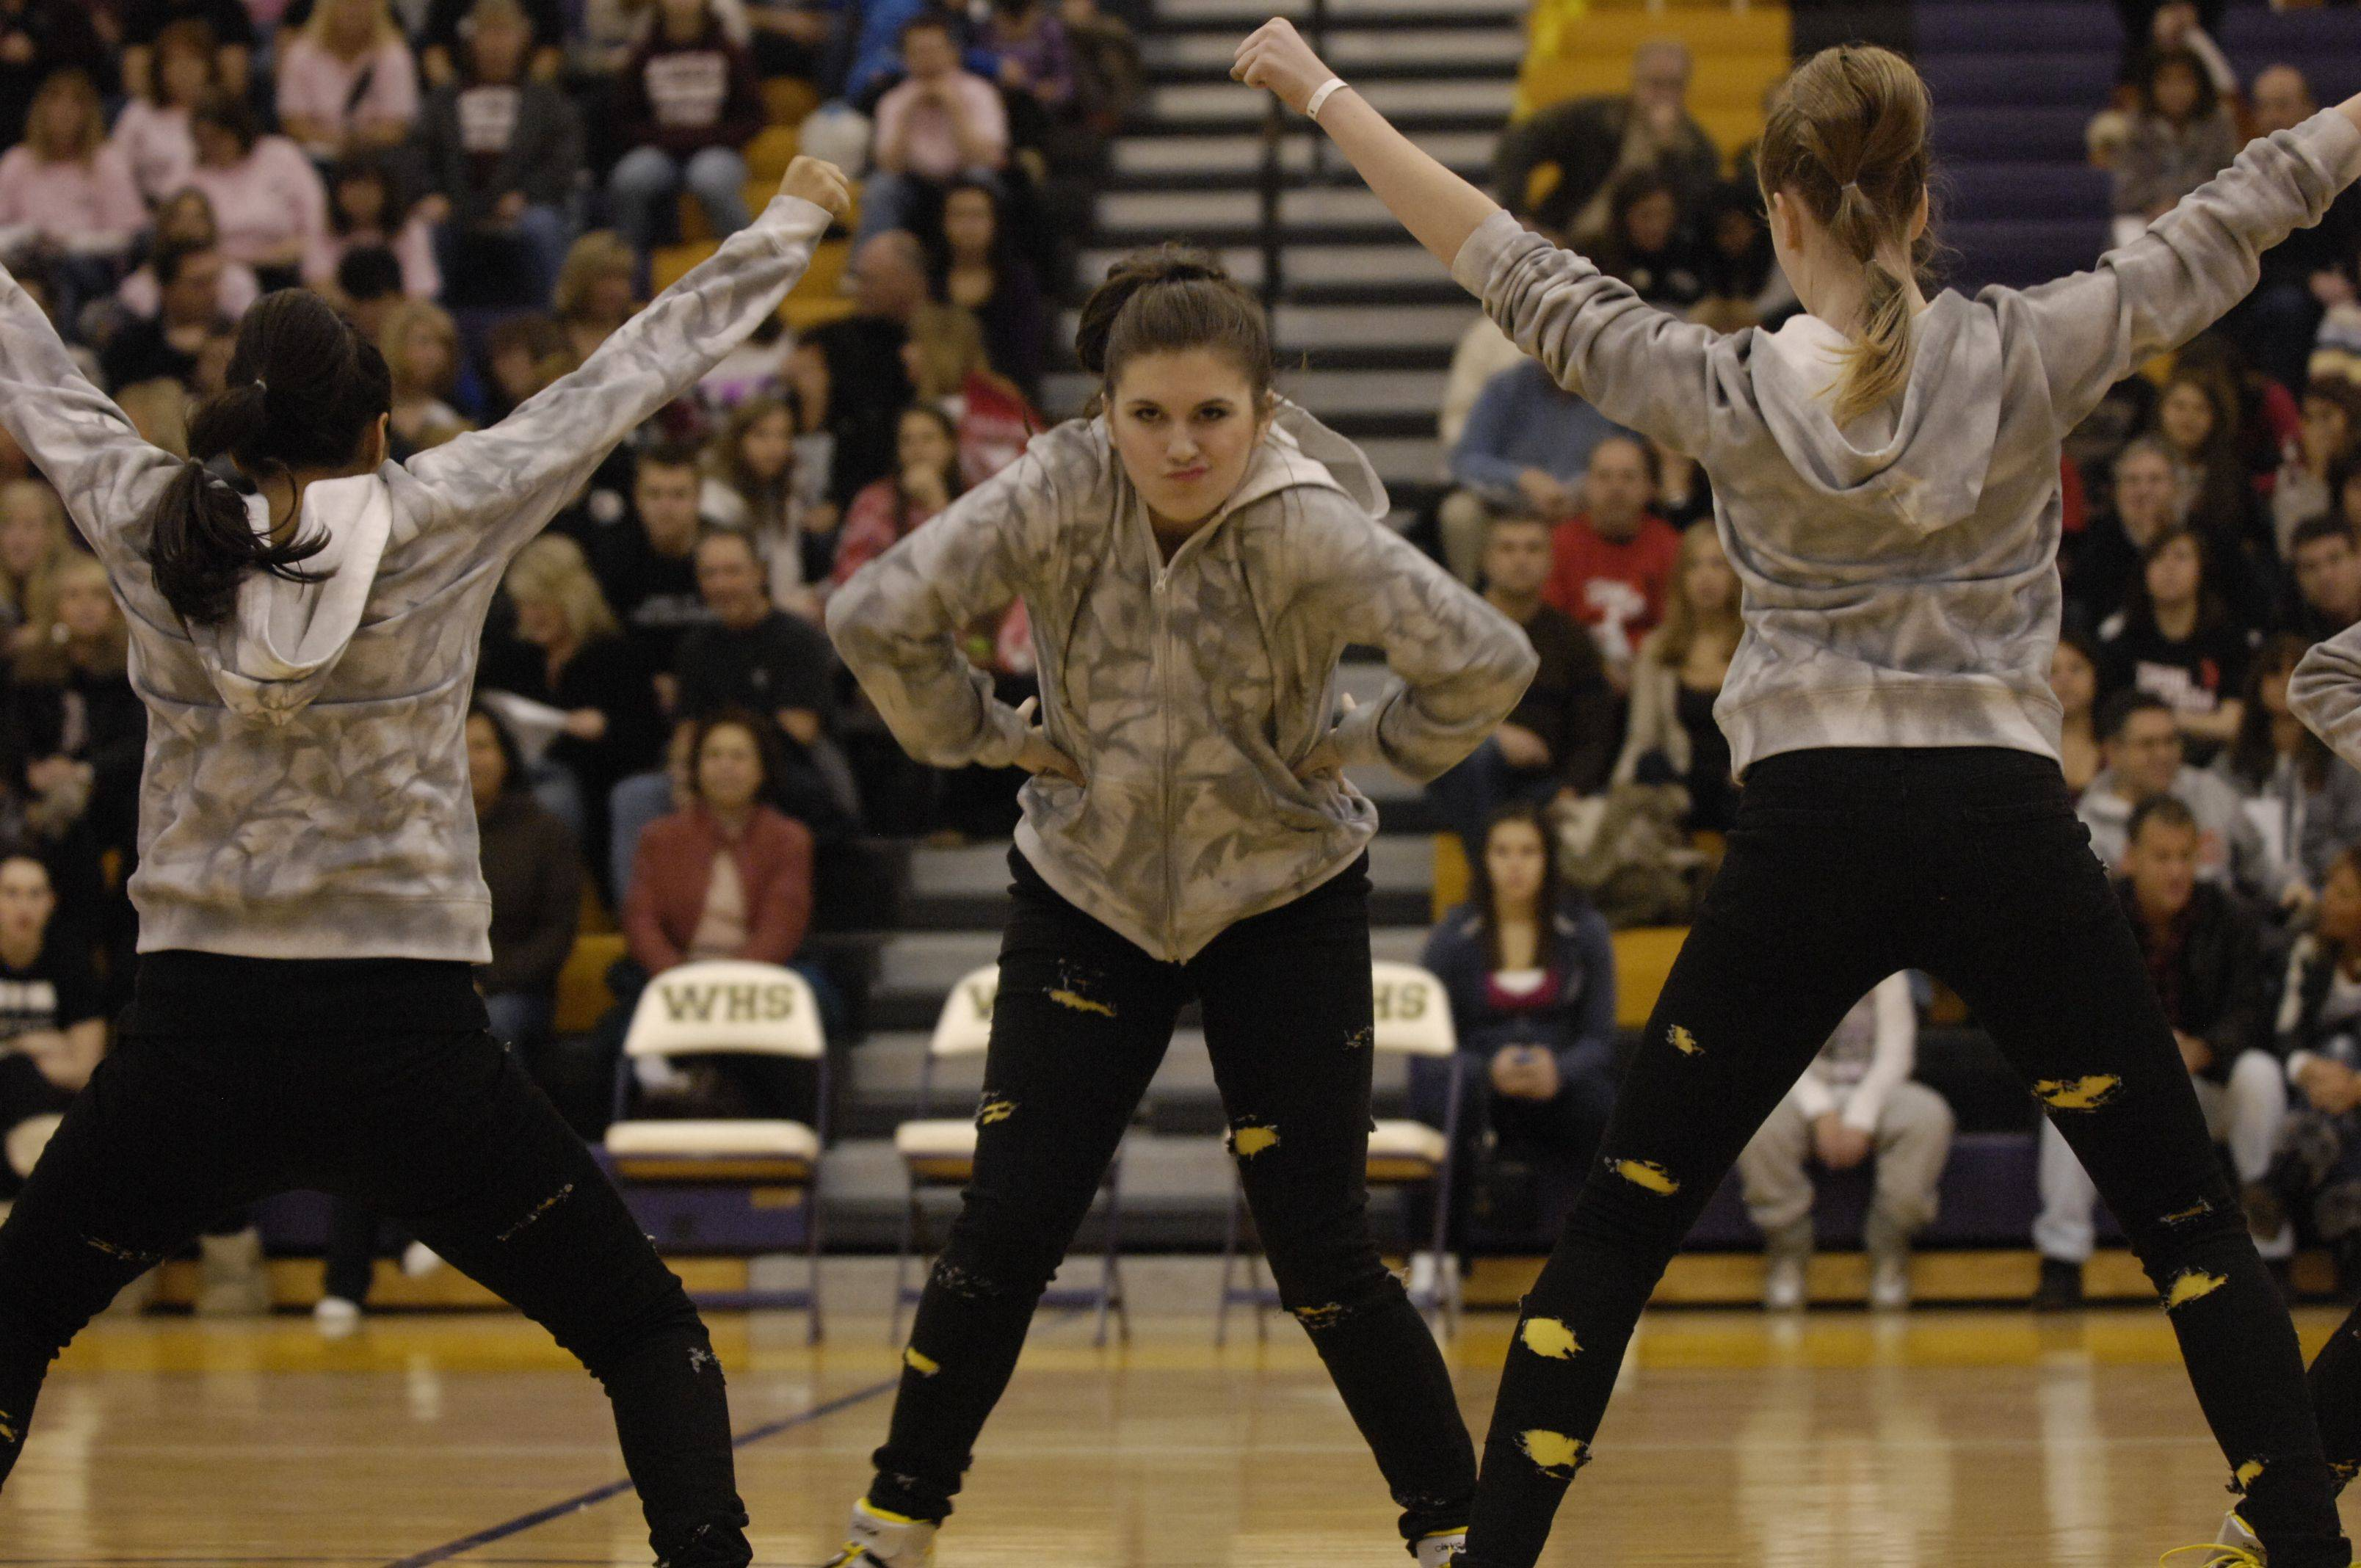 Mundelein High School performs in the AAA Hip Hop division during the Team Dance Illinois Wauconda Invitational competition at Wauconda High School.